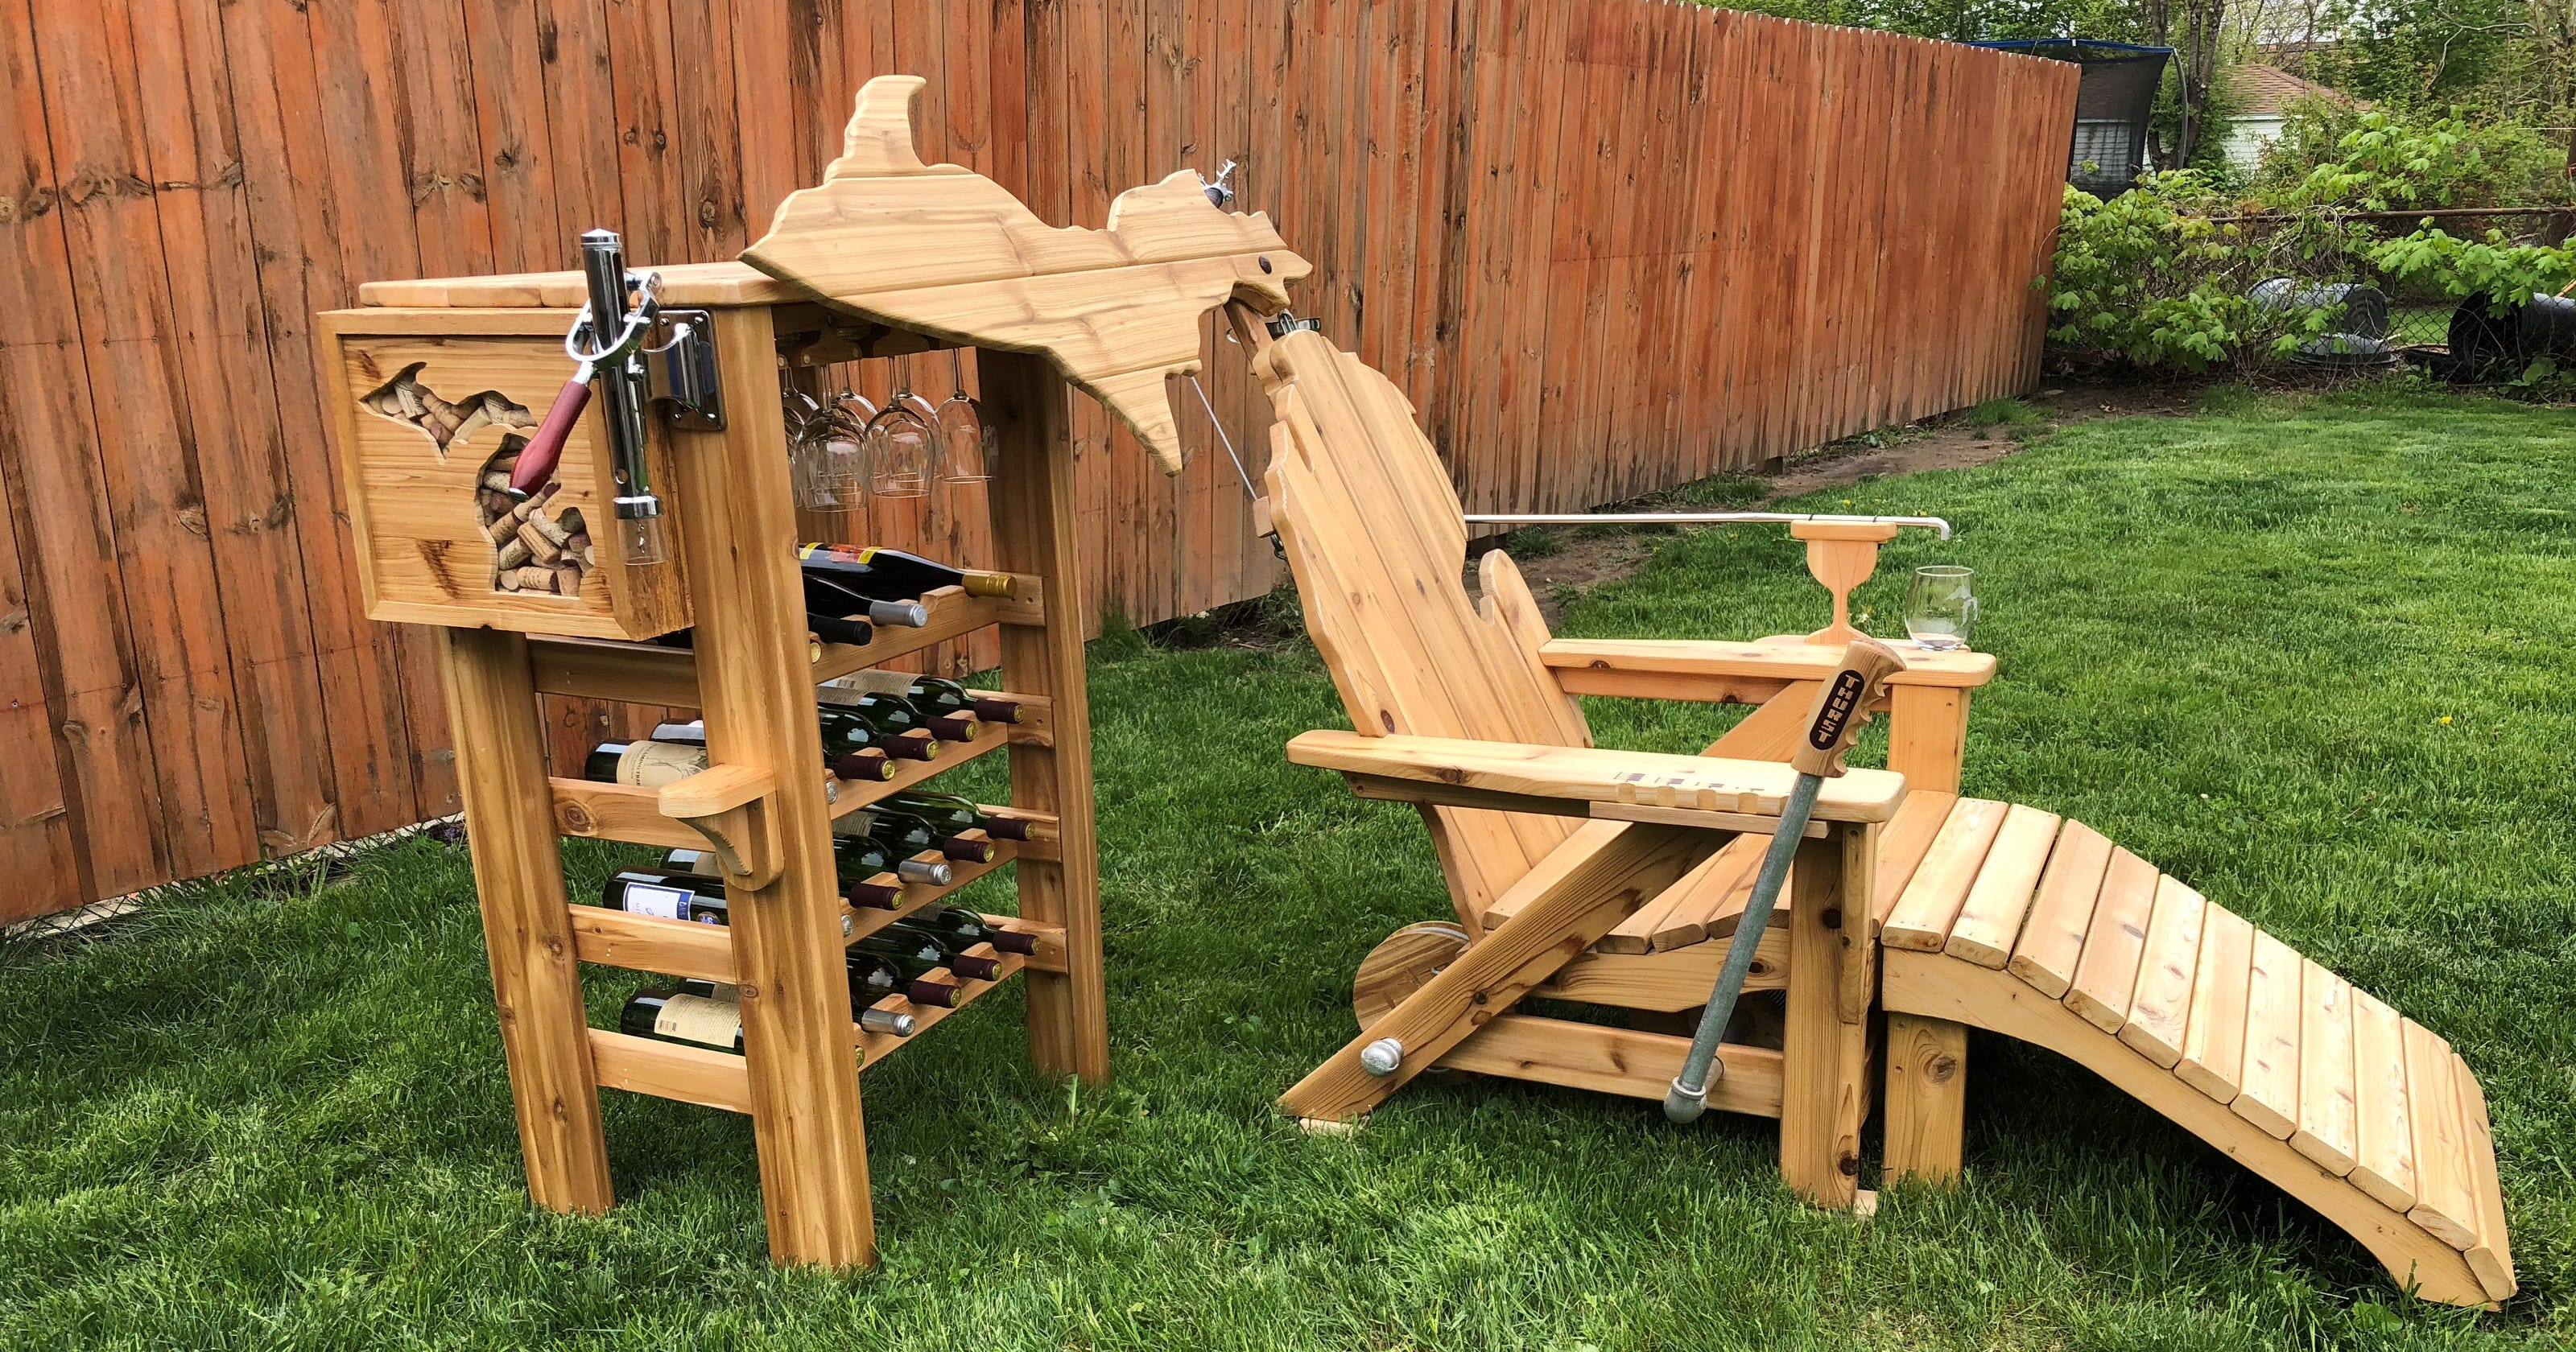 Michigan Man Builds Lawn Chair That Will Pour You A Glass